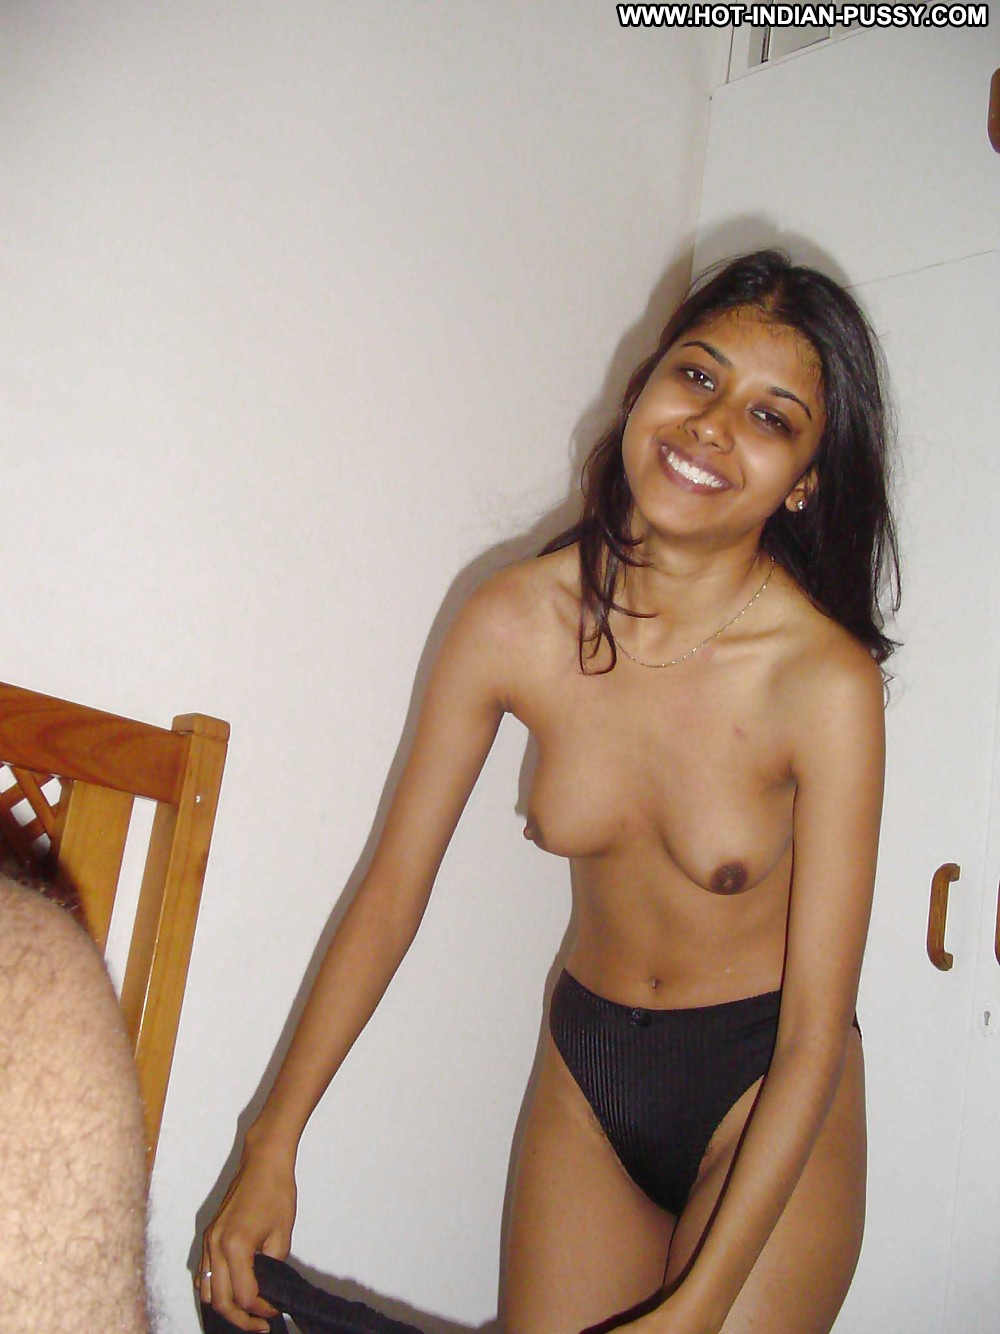 Hairy pussy indian amateur gets drilled deep